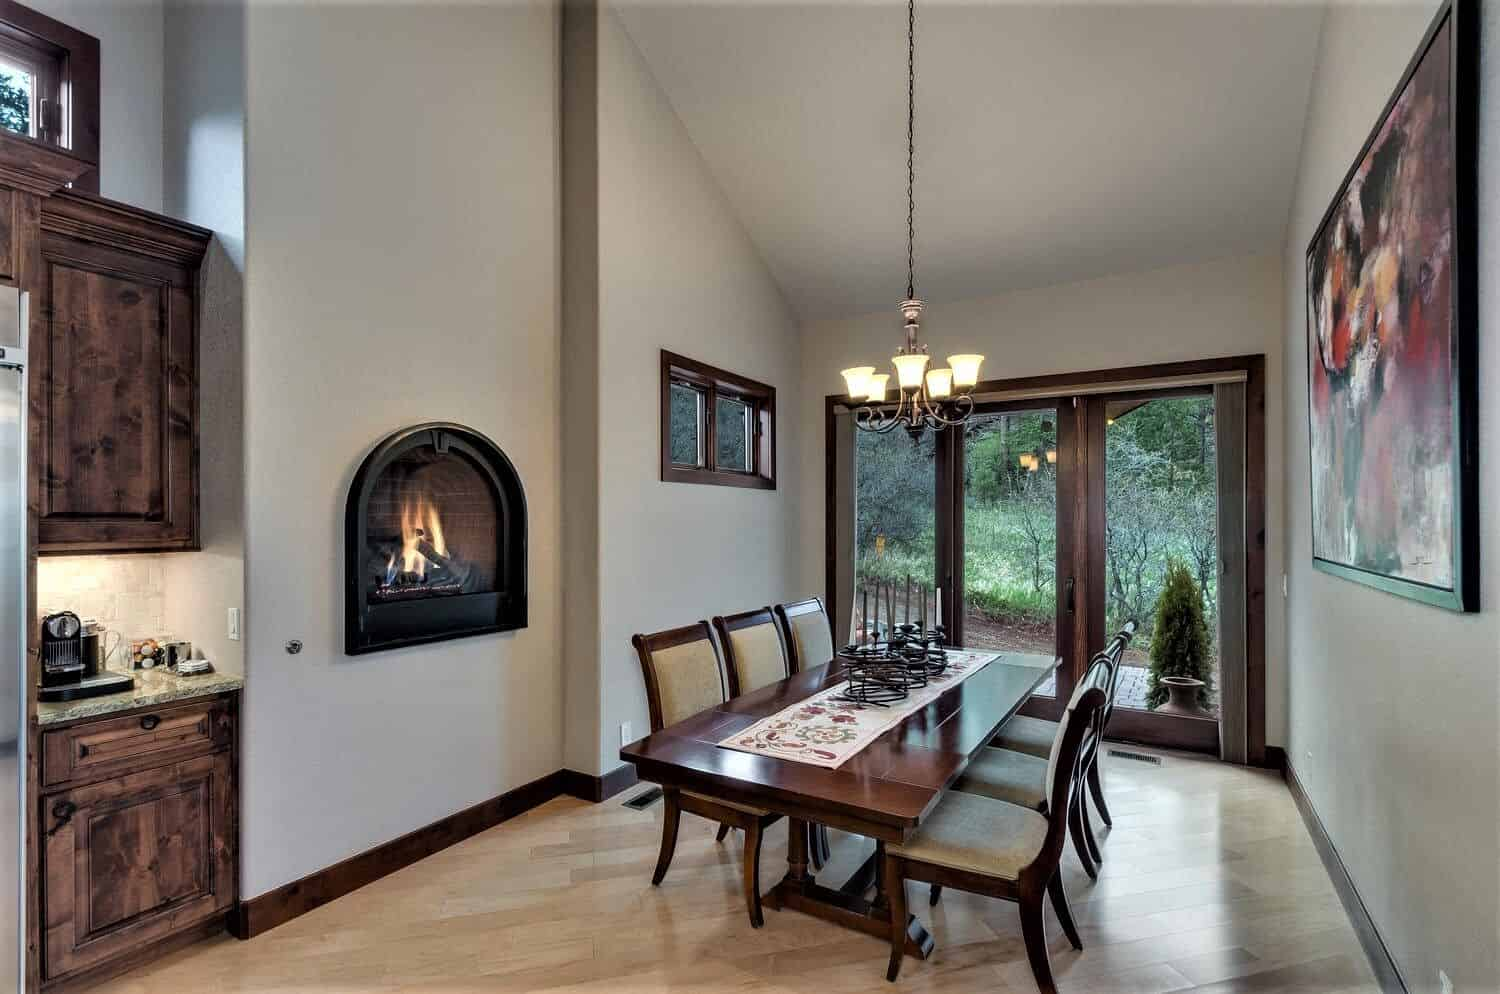 Dining Room with Fireplace and Walkout to Paver Patio